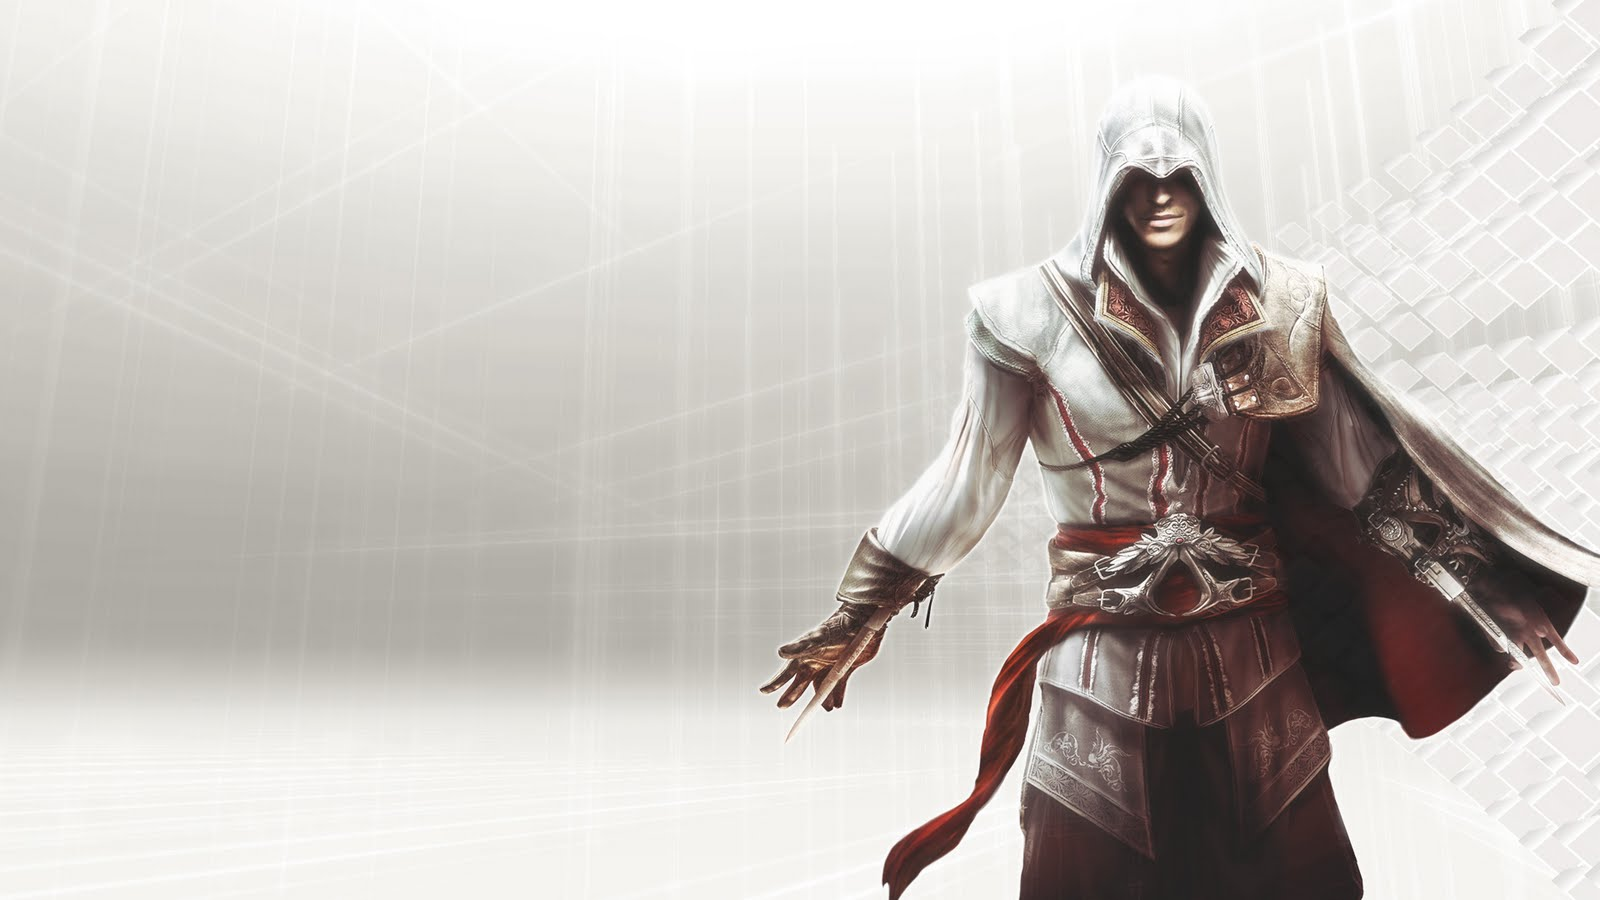 Assassin's creed HD wallpaper ~ GO 4 WALLPAPER DOWNLOAD